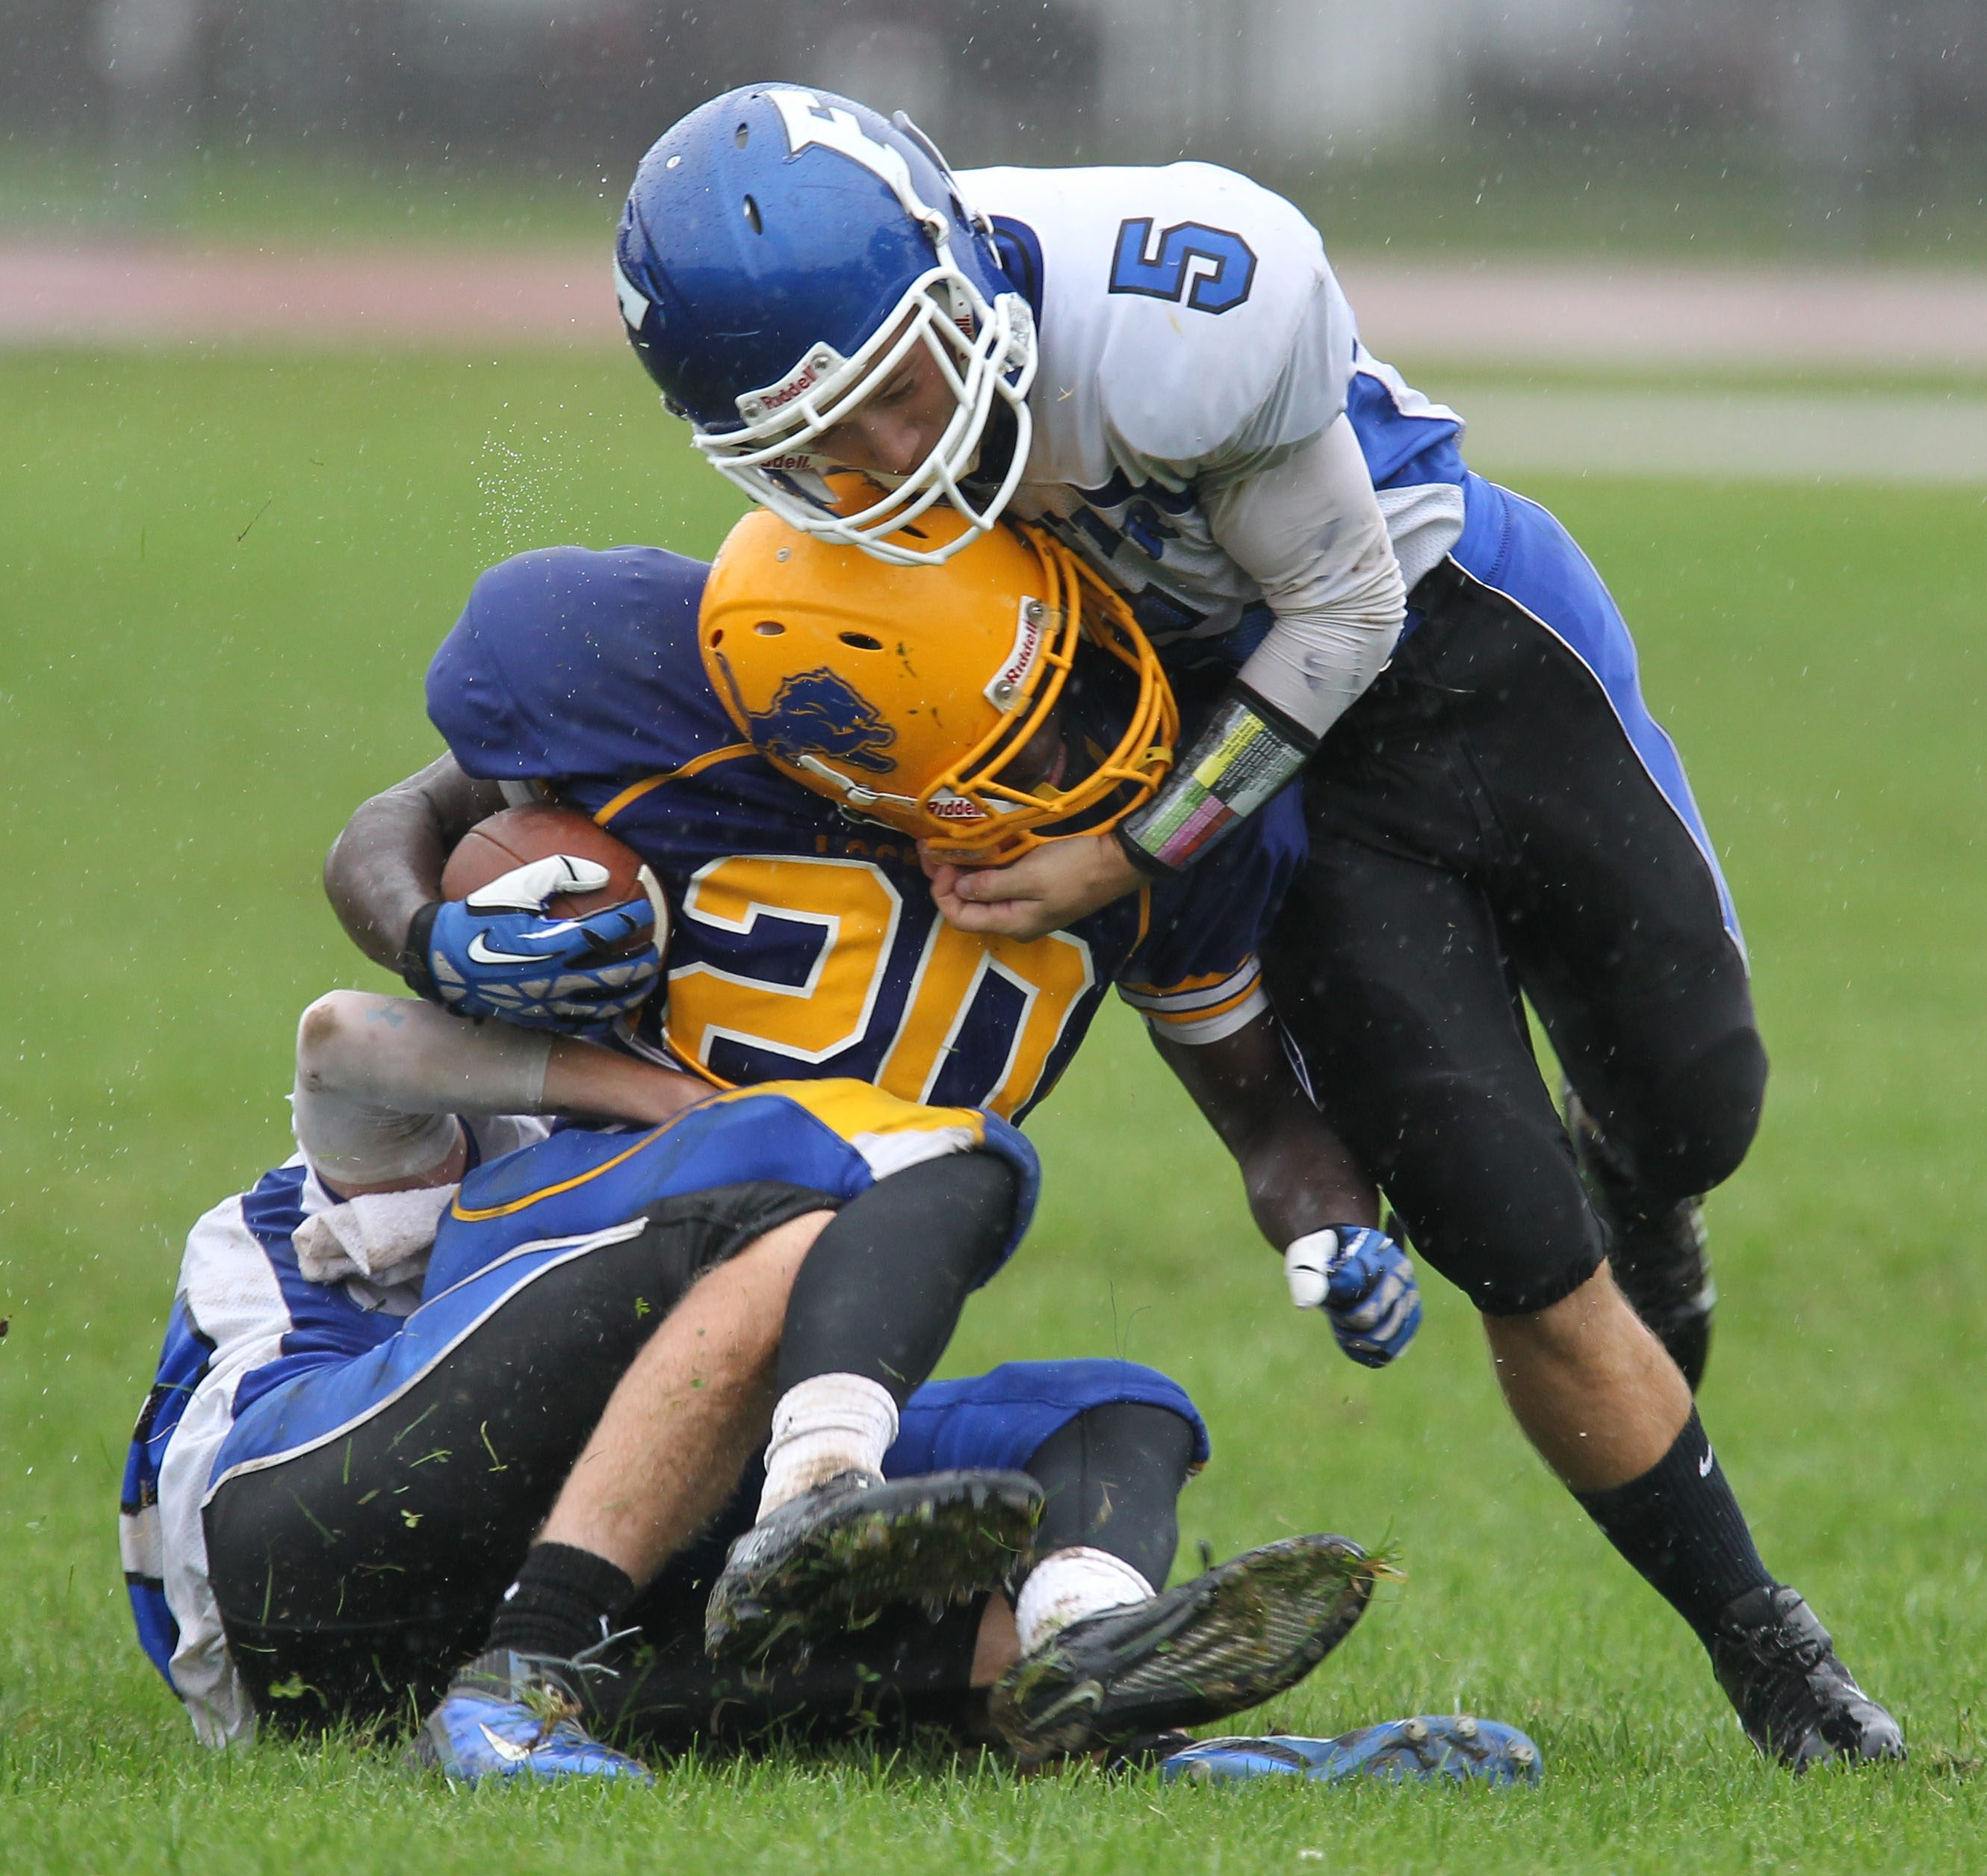 Frontier senior Rocco Russo, bottom, and junior Vinny Pupo, right, tackle Lockport junior running back Nick Hamilton on what was a great day for the Falcons' defense.